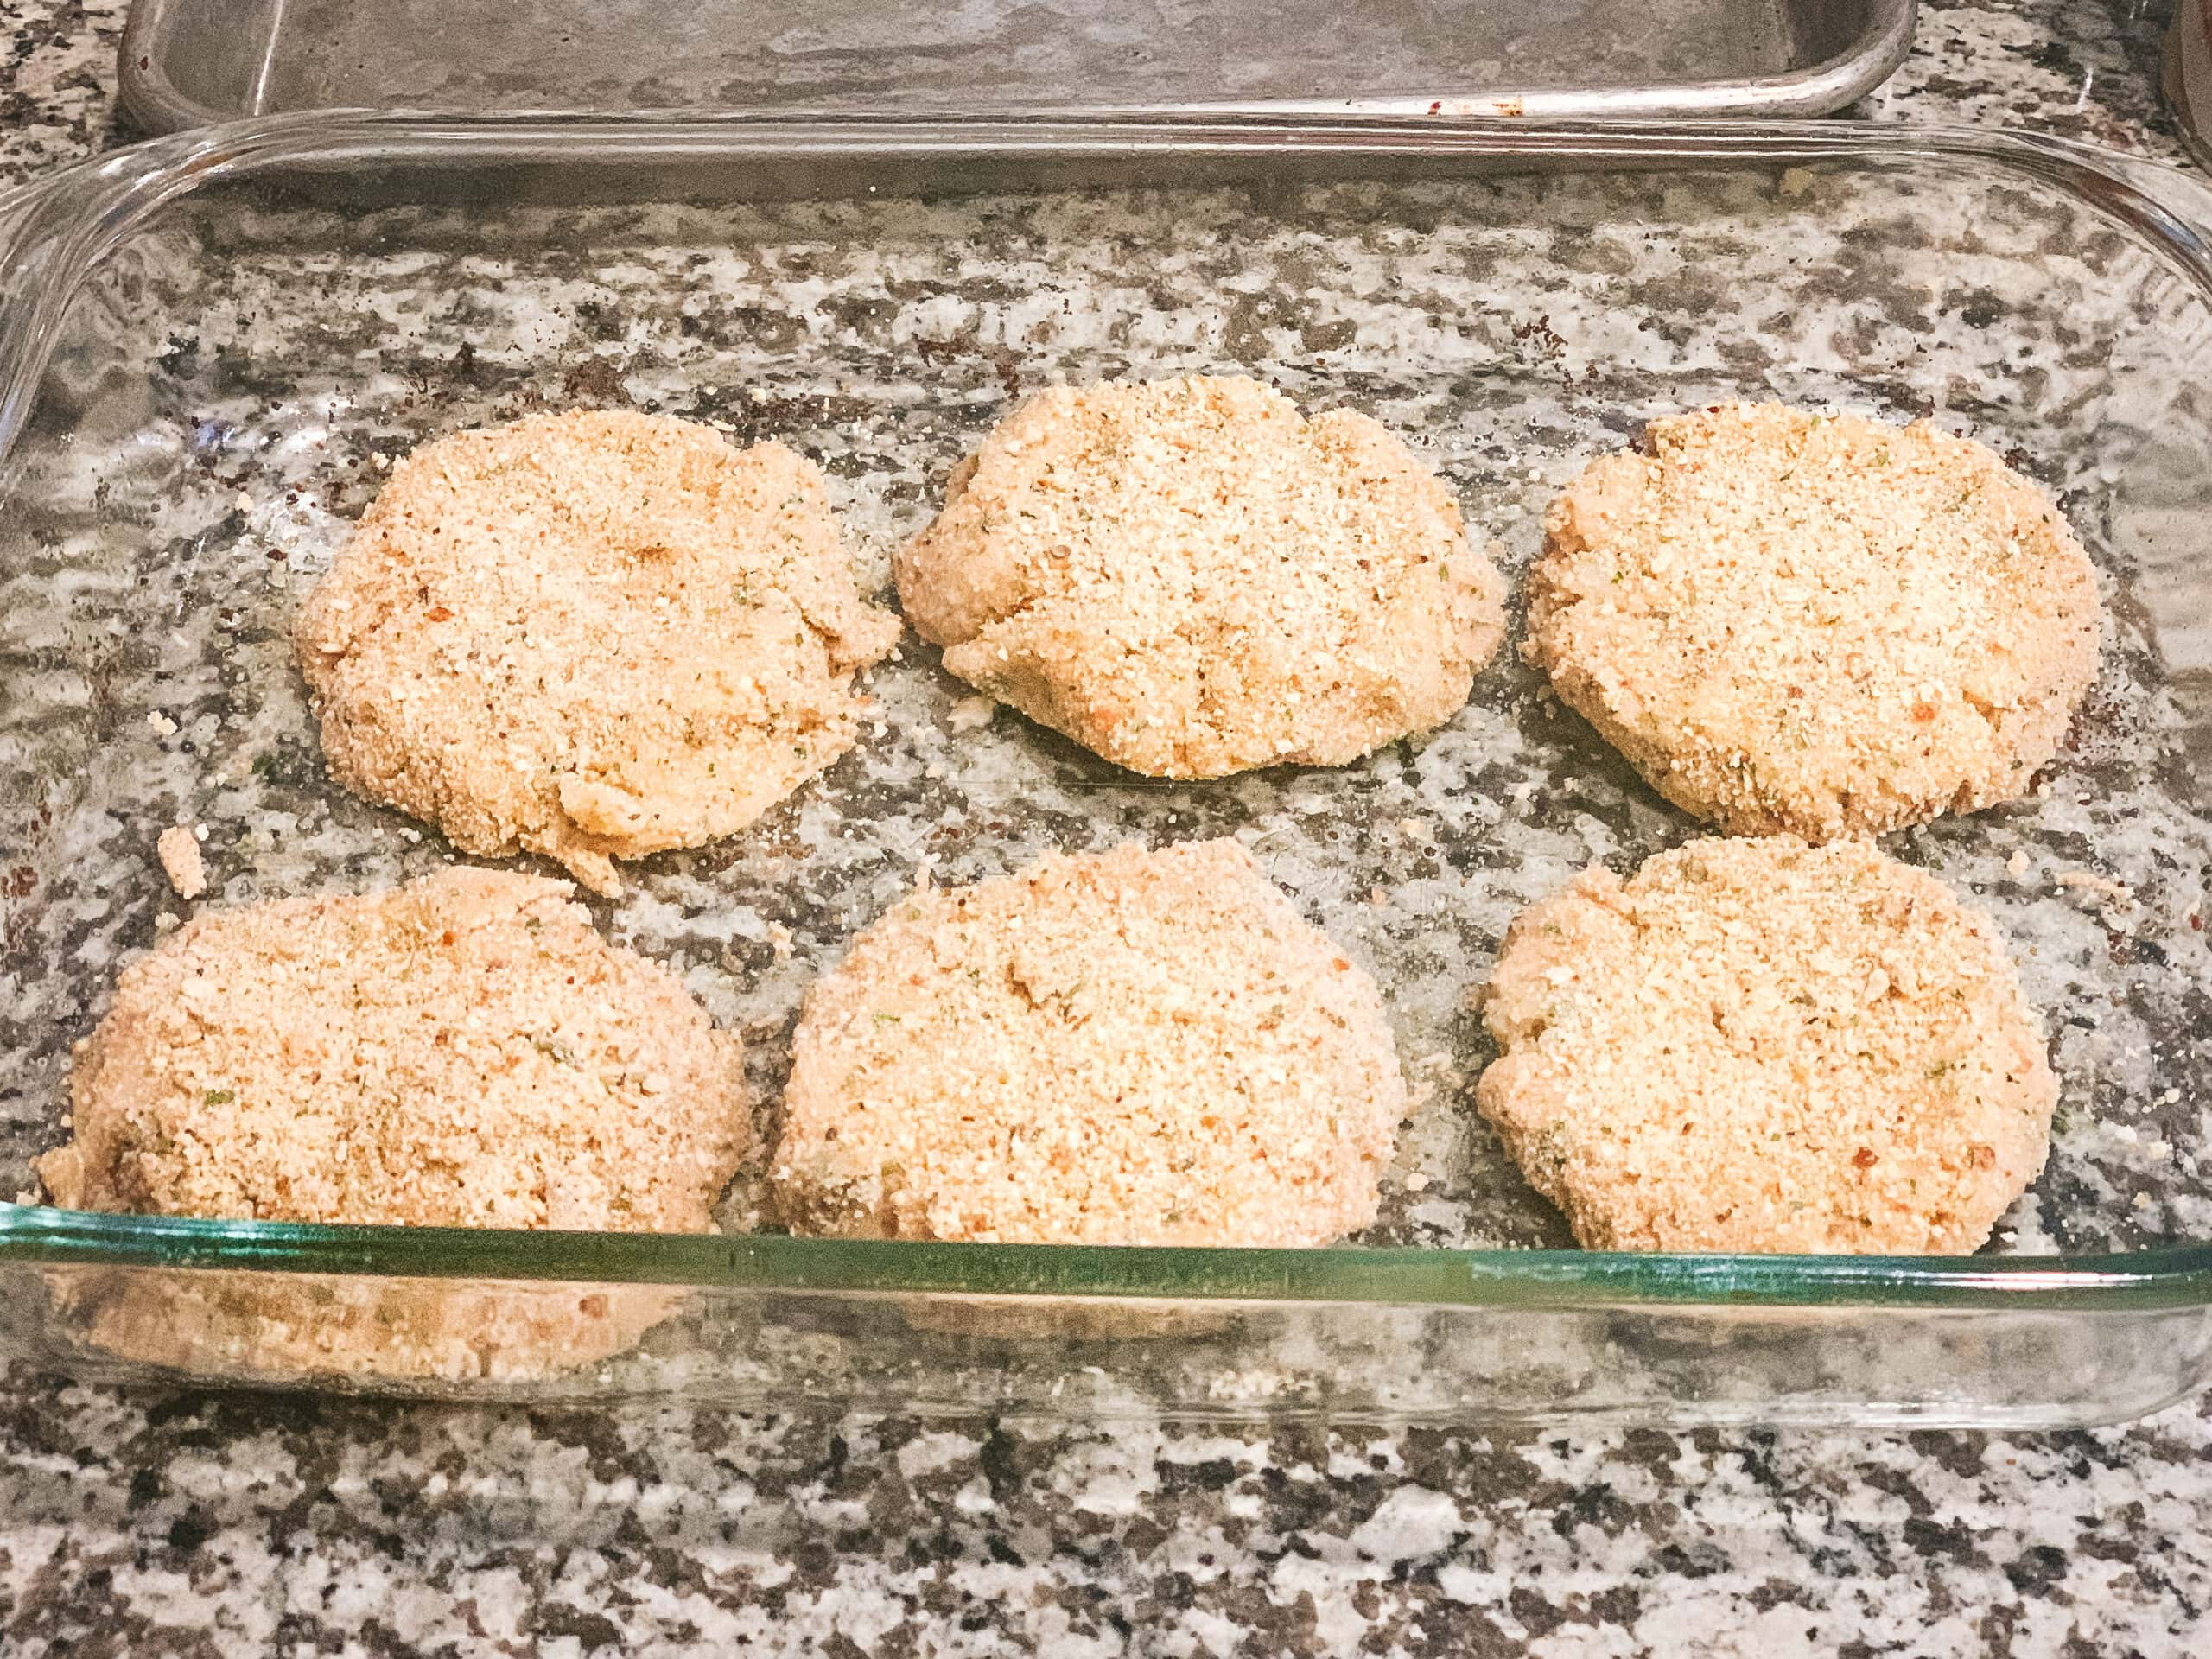 6 tuna cakes sit in a clear glass casserole dish before going in the oven. They are coated in bread crumbs.